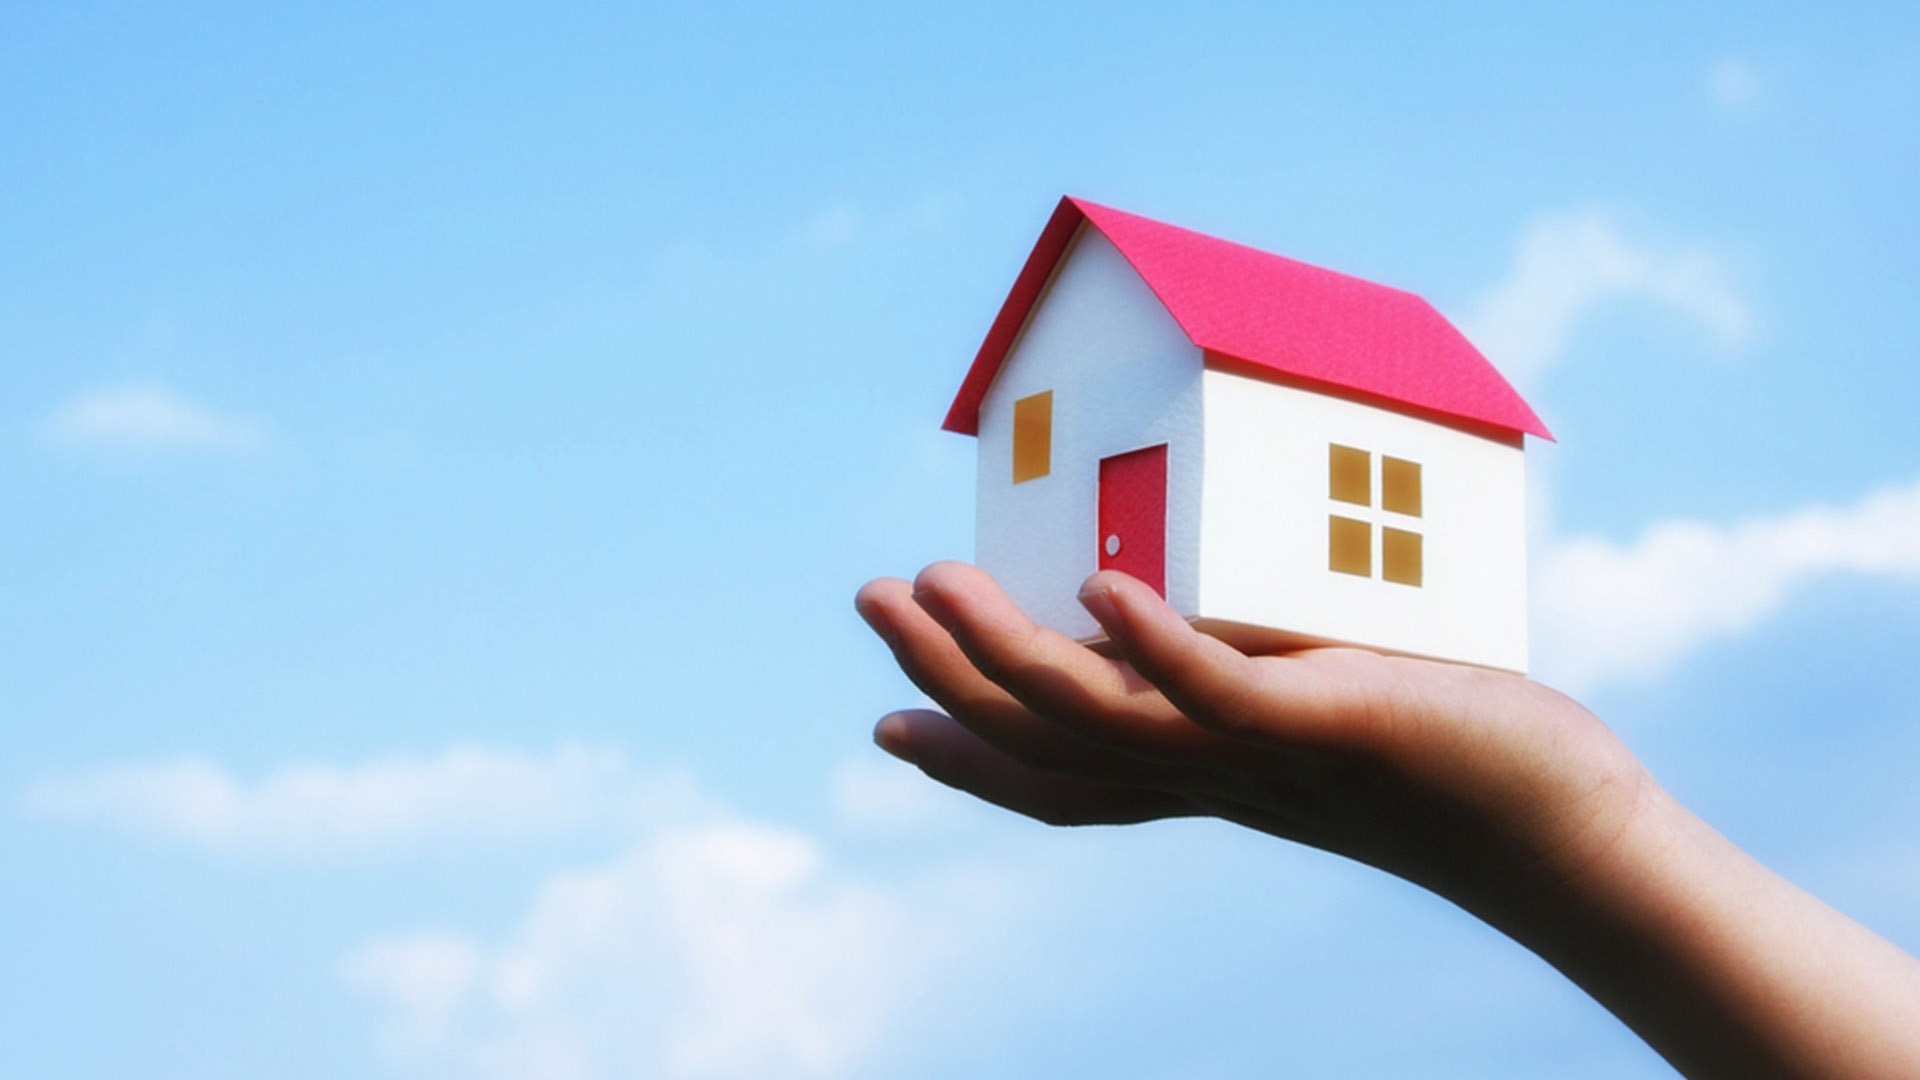 Dream house with affordable housing finance